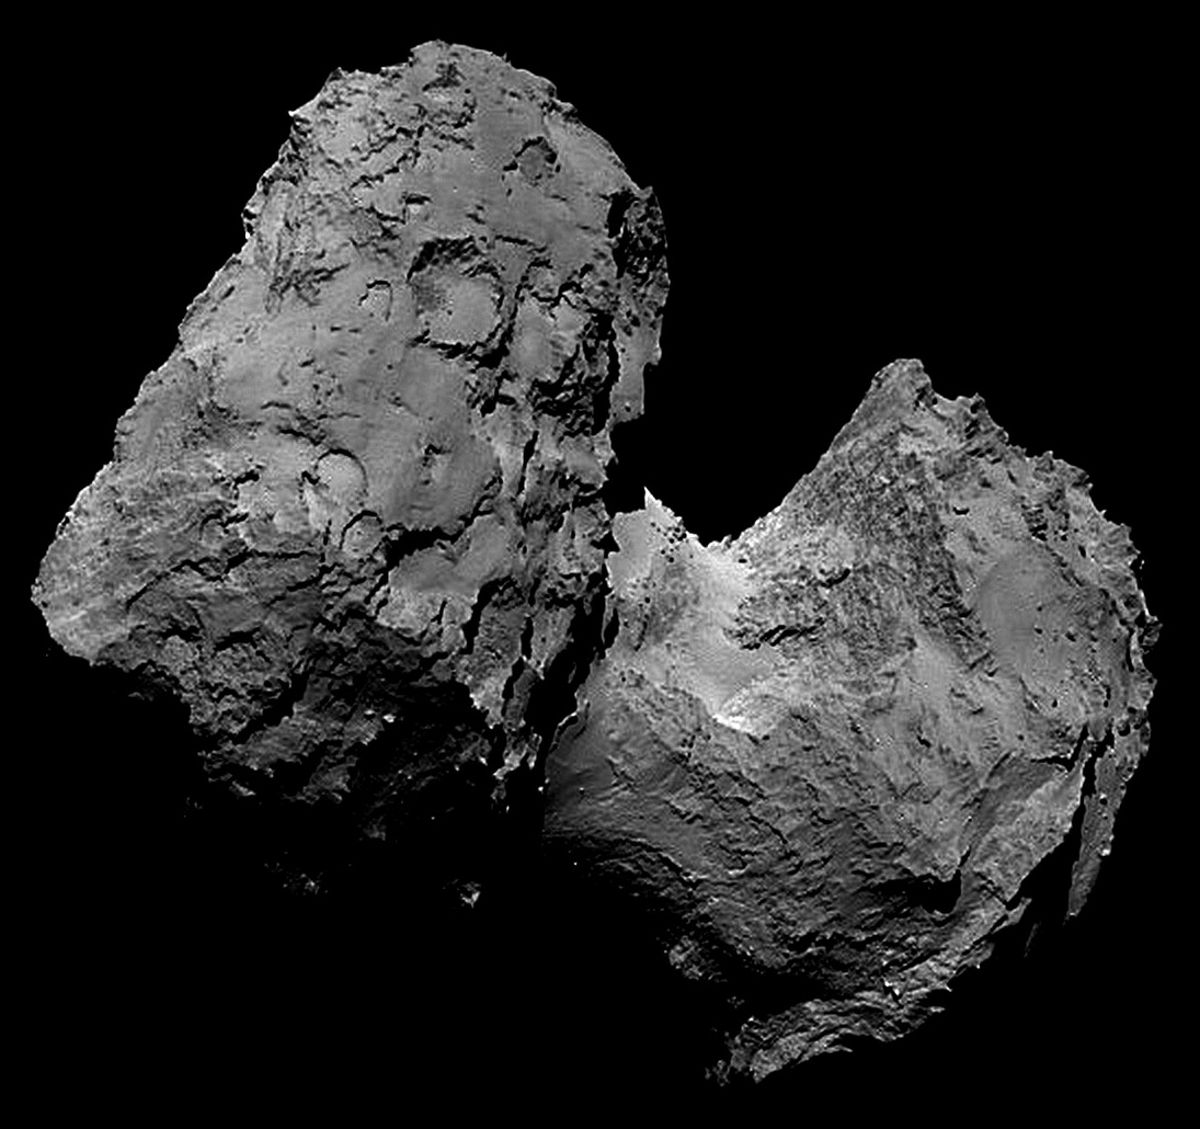 Comets and asteroids are similar: rocks and craters evidence